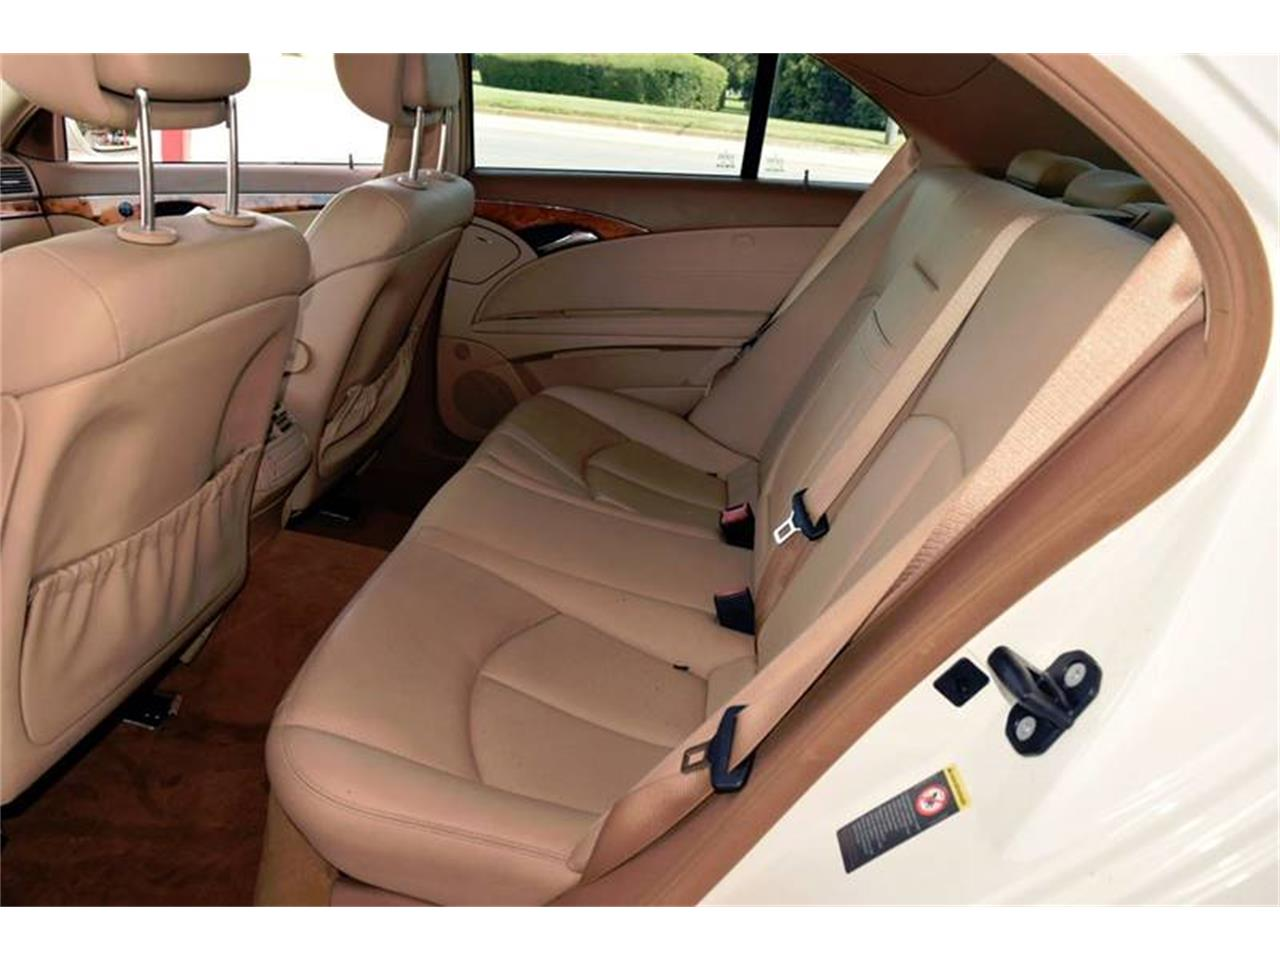 2009 Mercedes-Benz E-Class for sale in Fort Worth, TX – photo 11